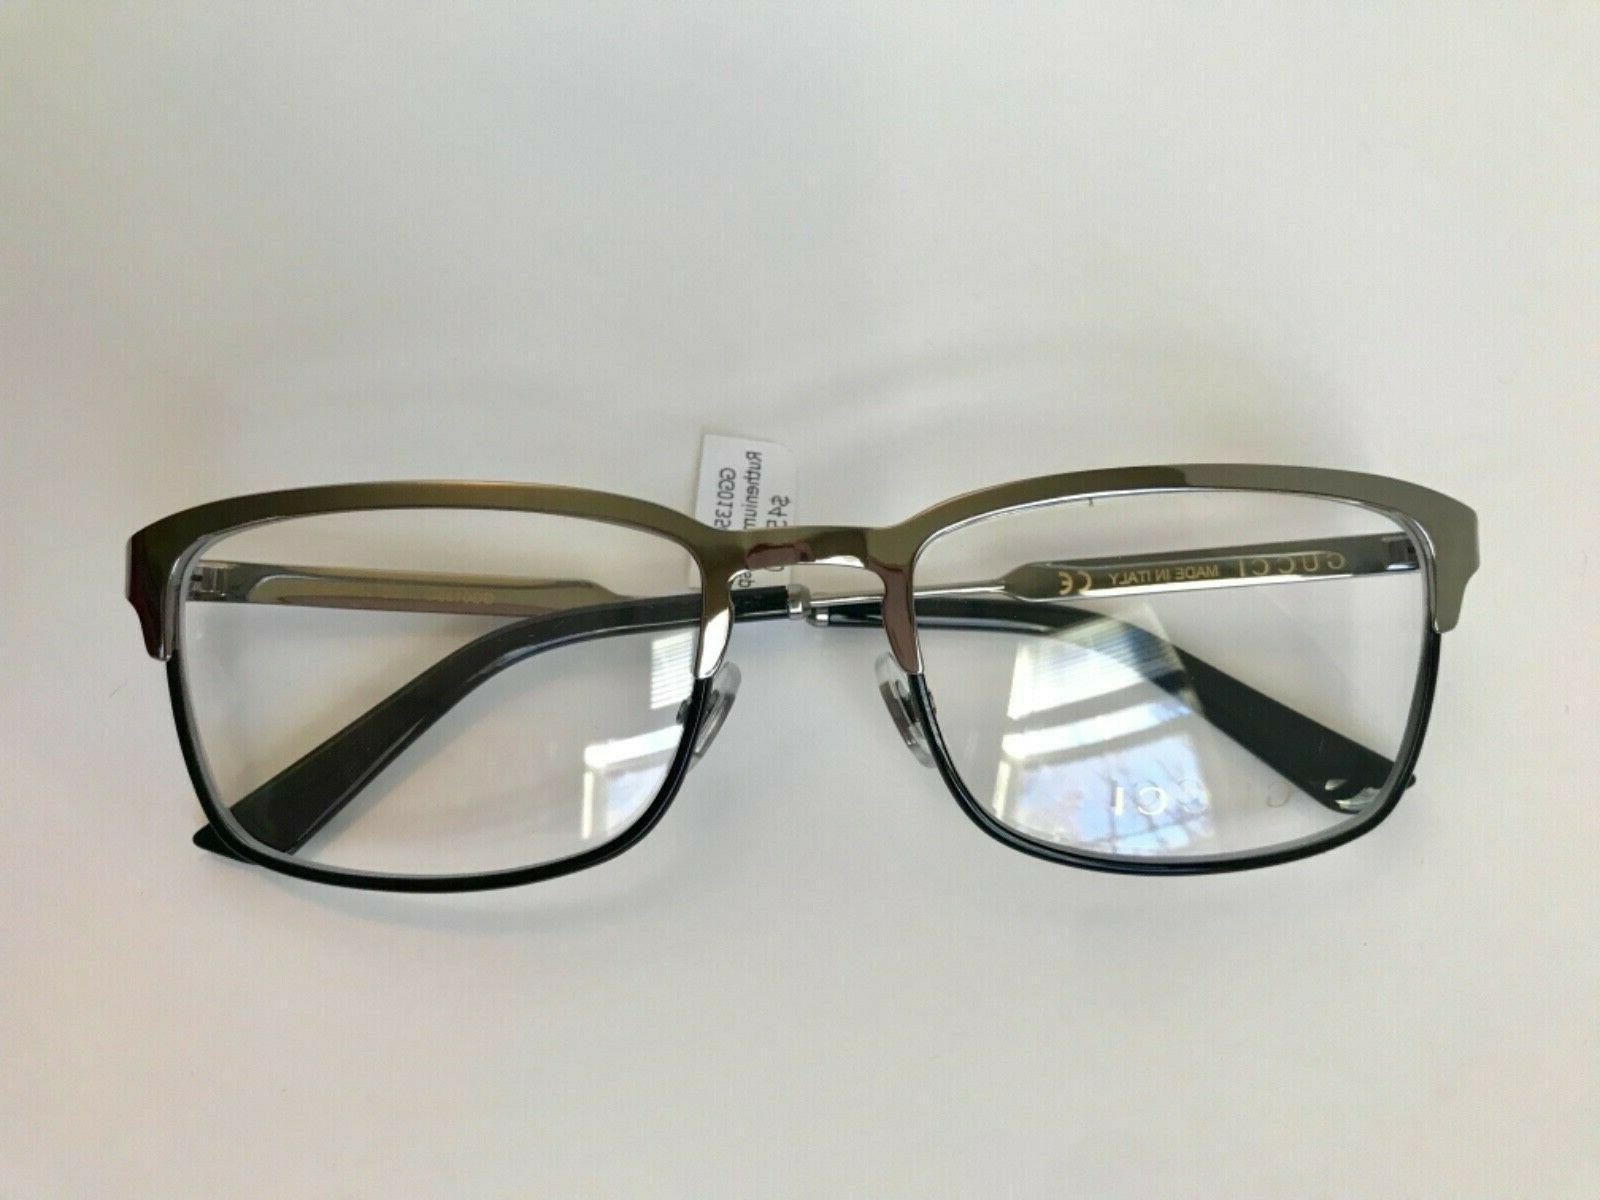 NEW GUCCI 006 EYEGLASSES w/ WEB ARMS